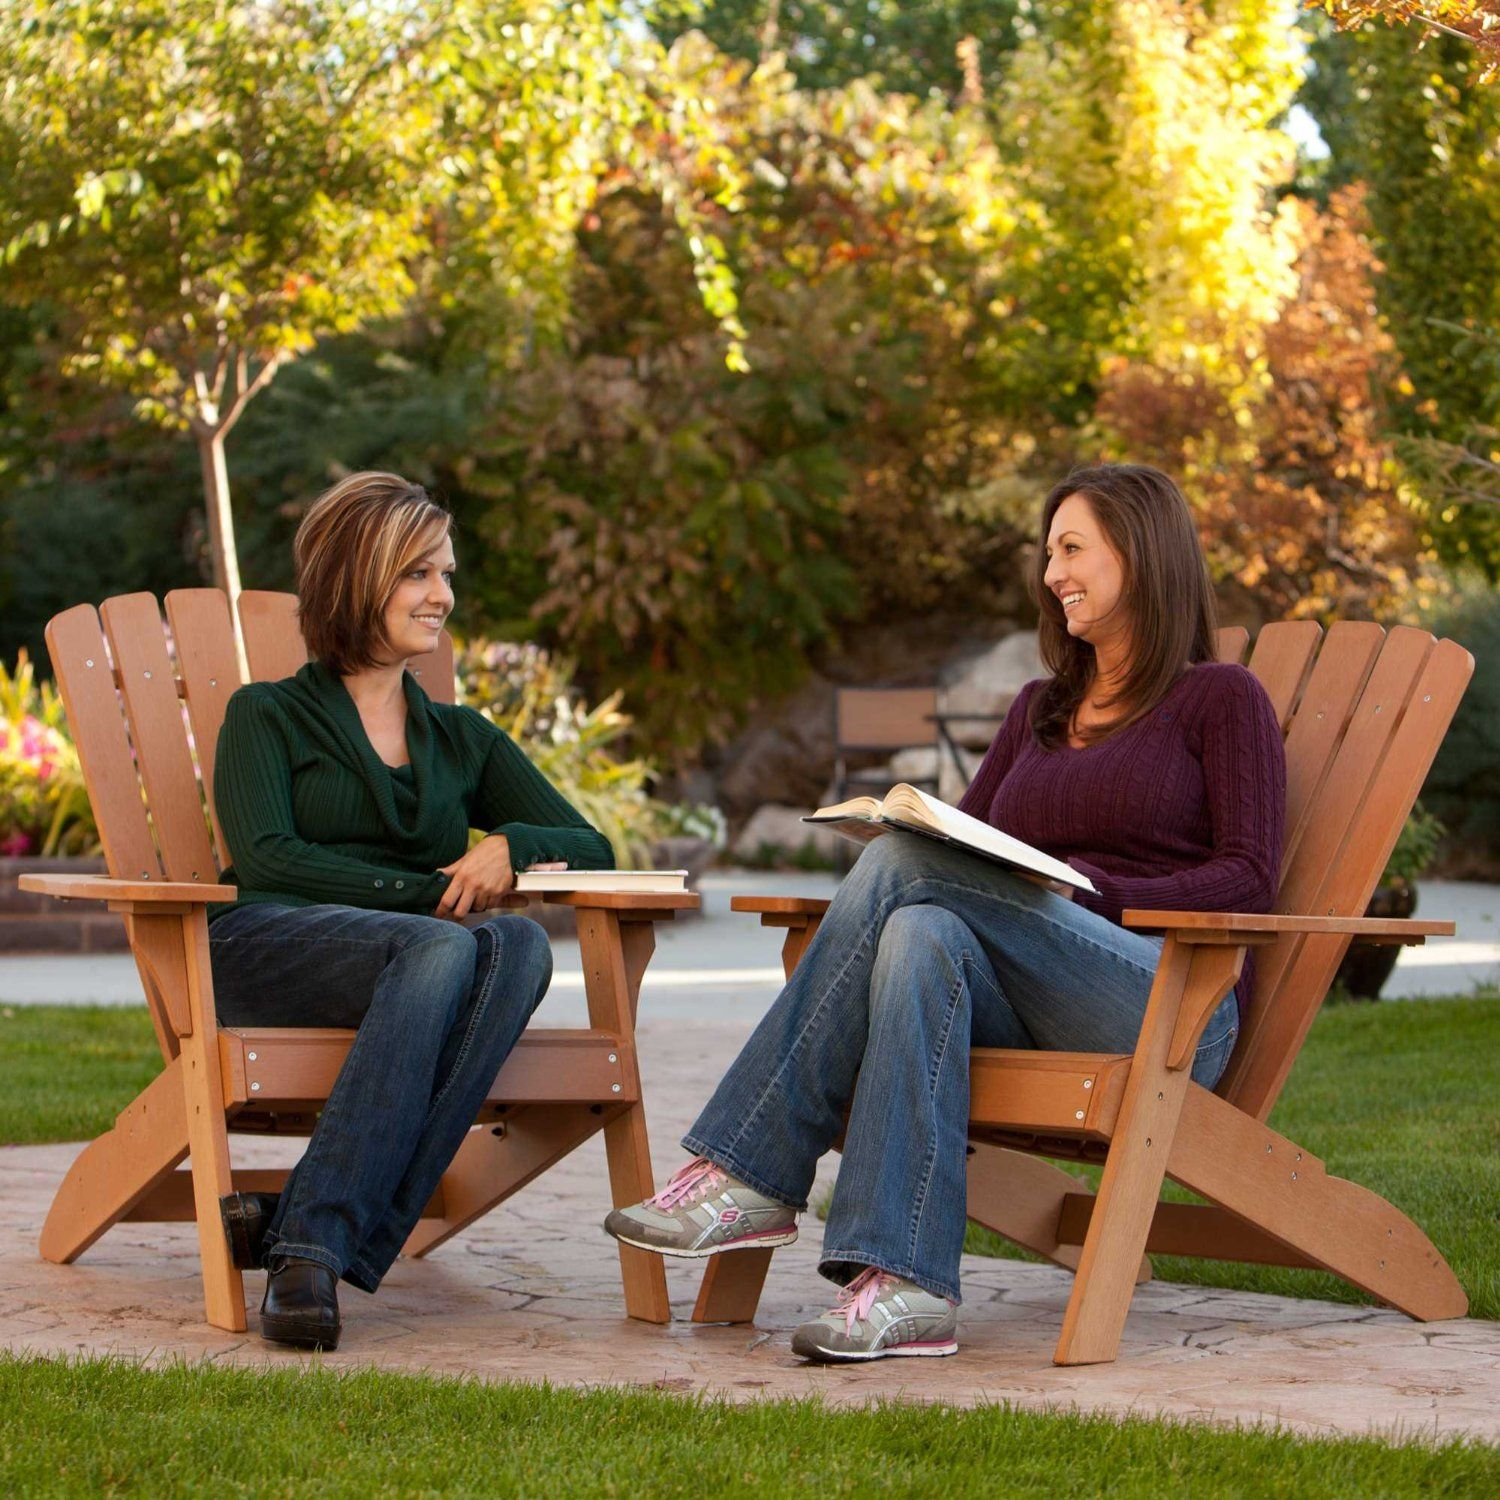 Lifetime 60064 Adirondack Chair Patio, Lawn